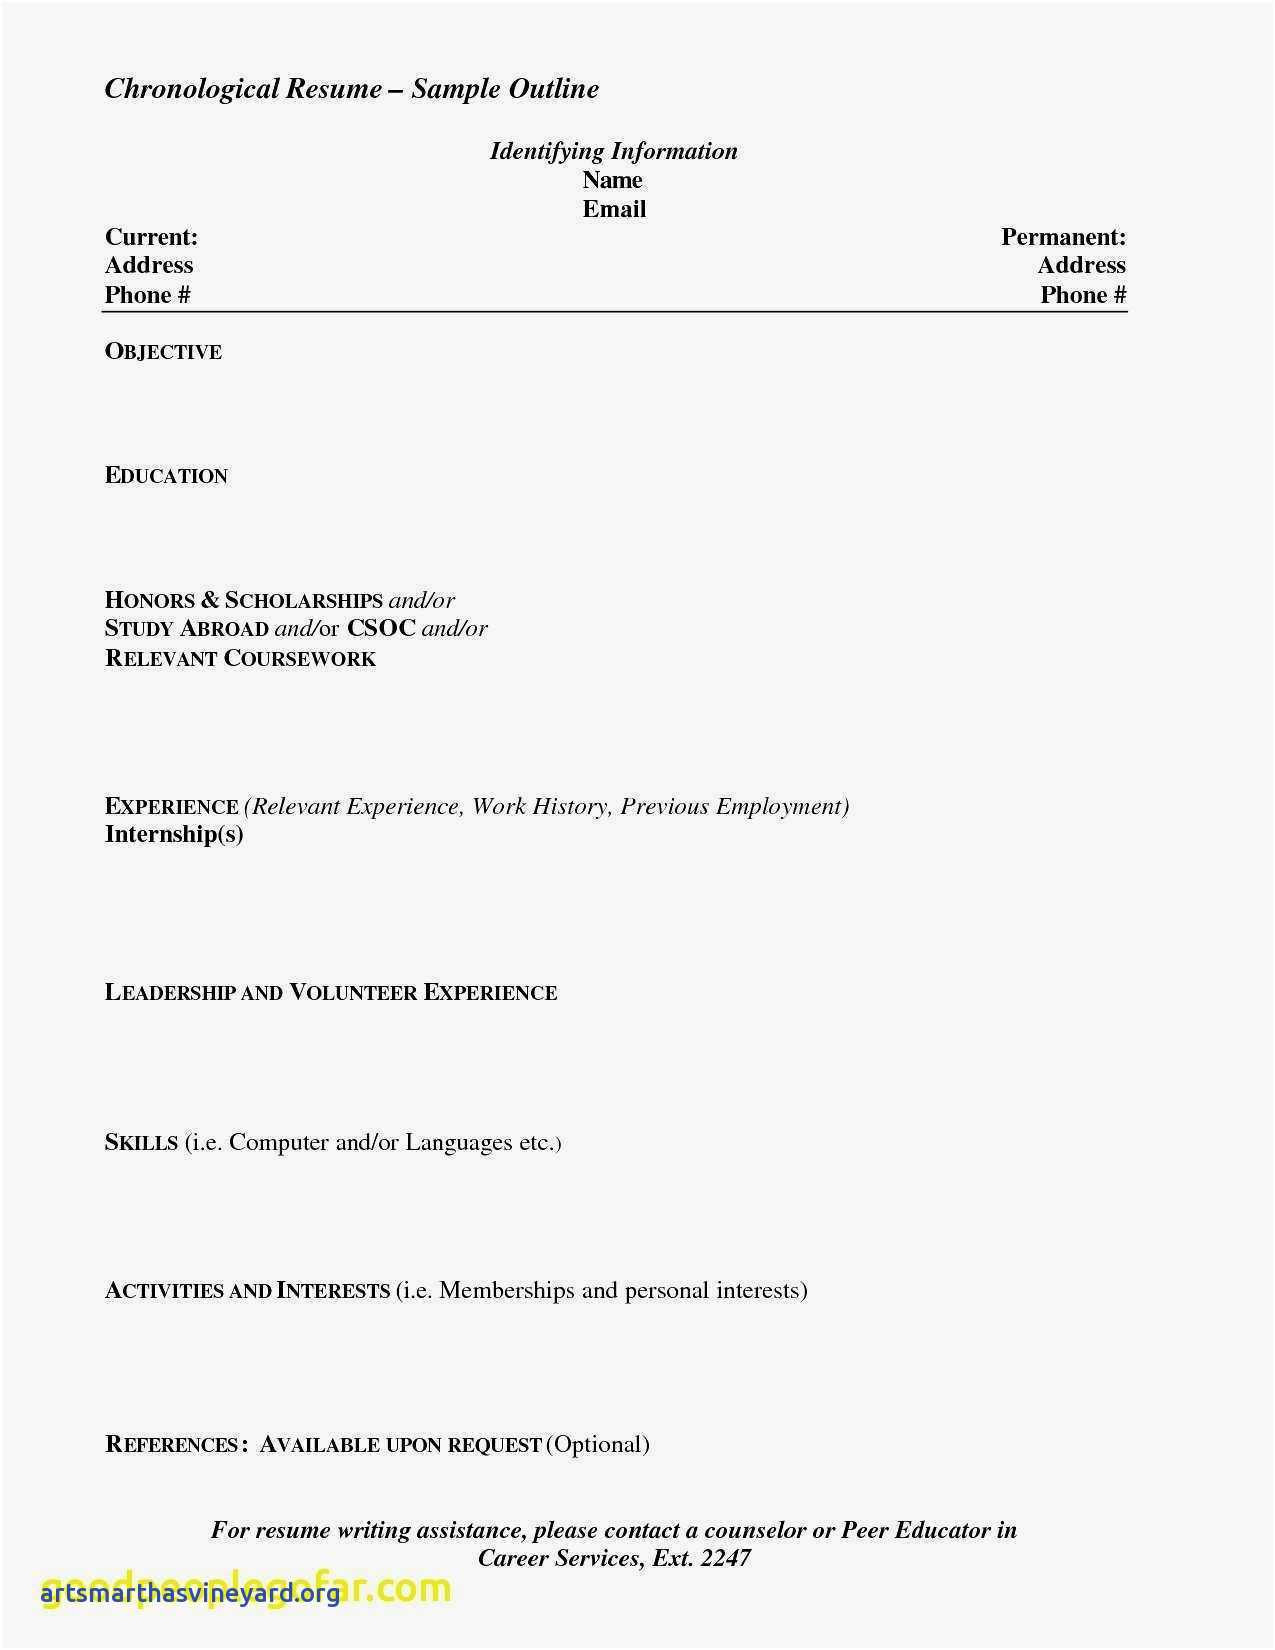 Unique Resume Templates - Resume Templates High School Students No Experience Simple Unique